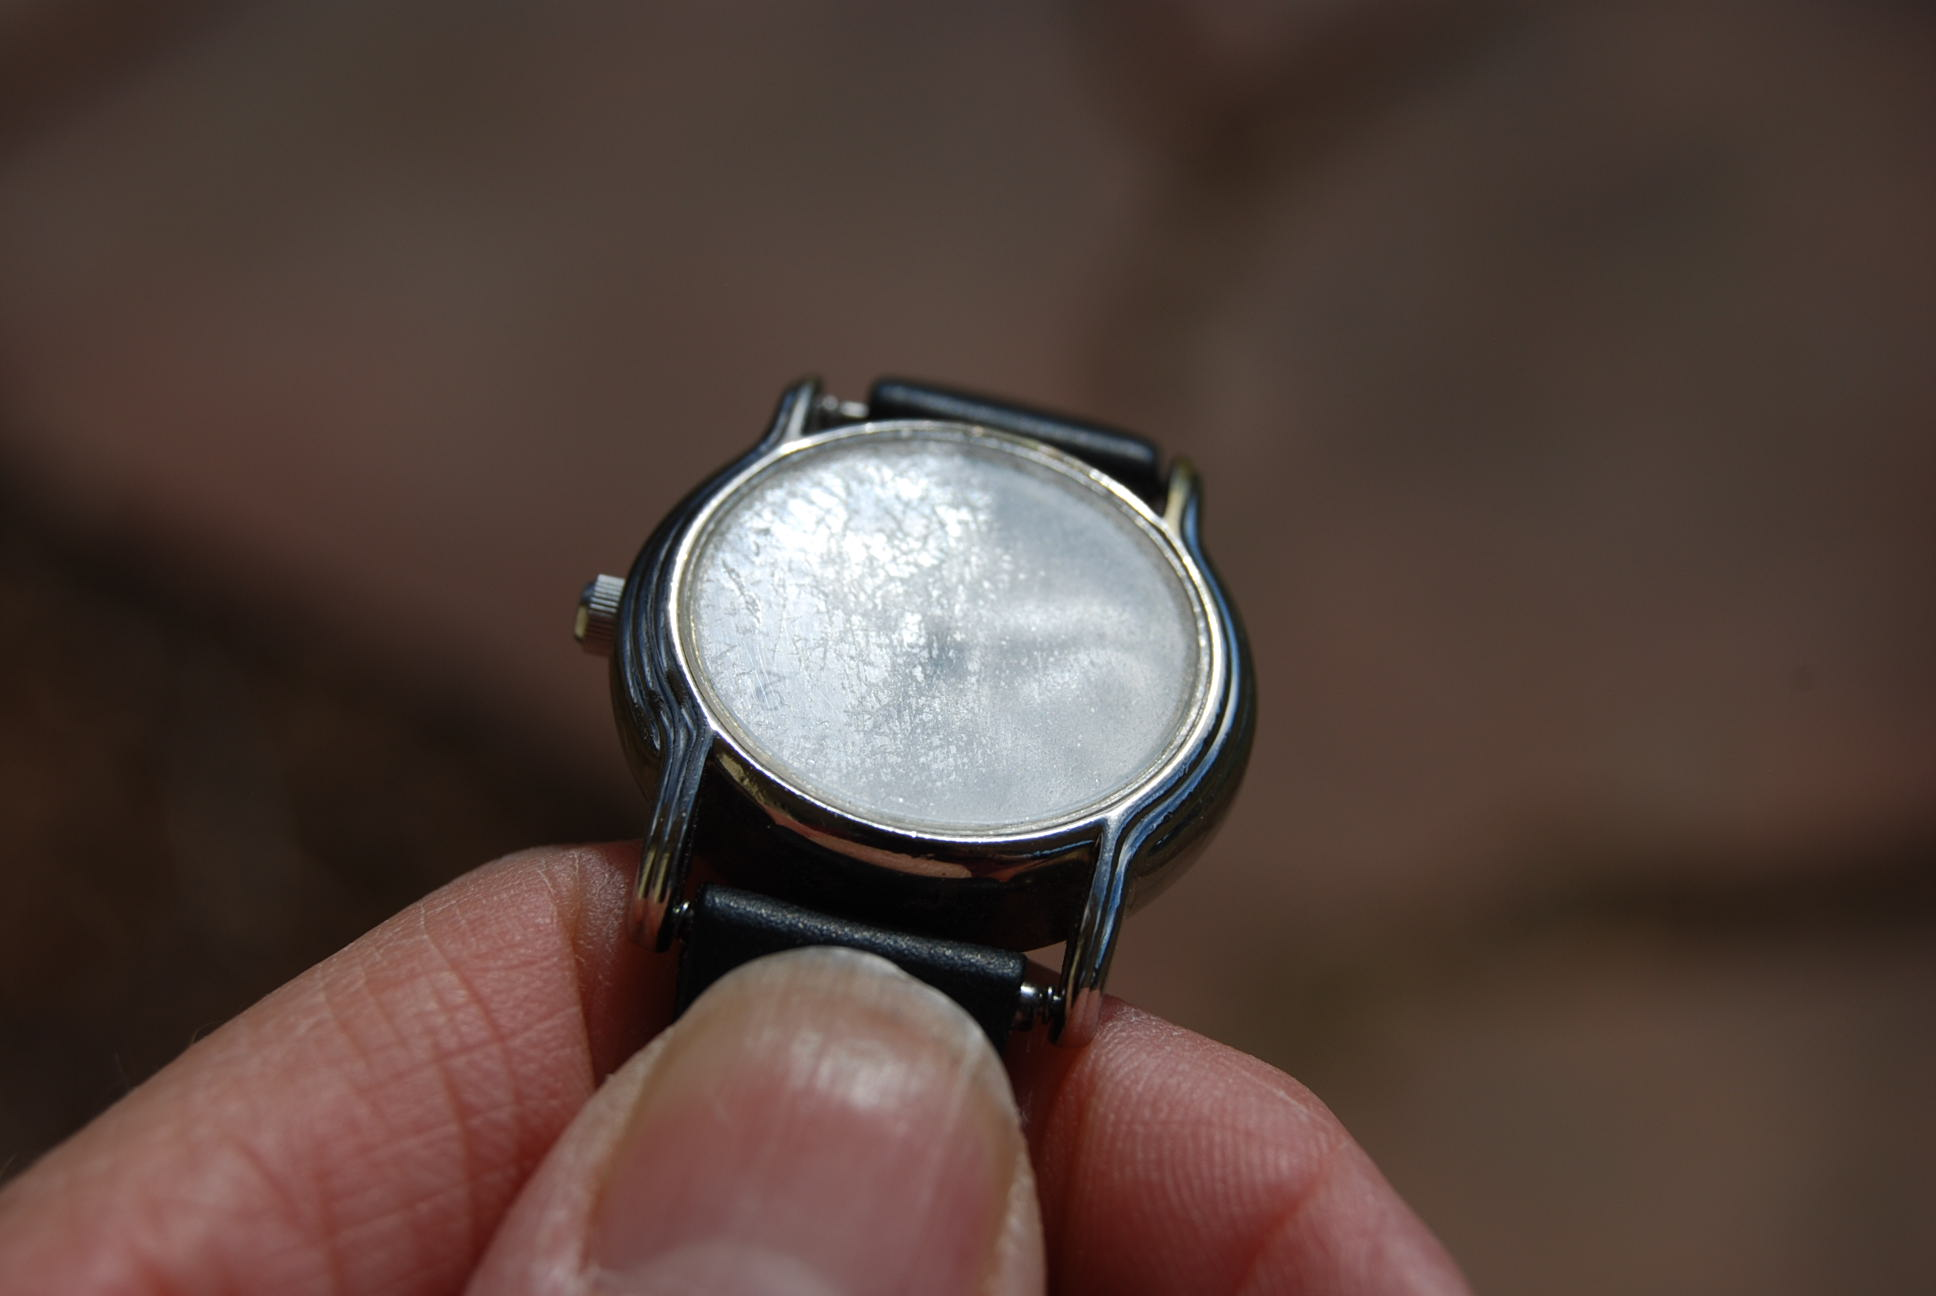 Vintage Watch Before restoring etched glass with cerium oxide